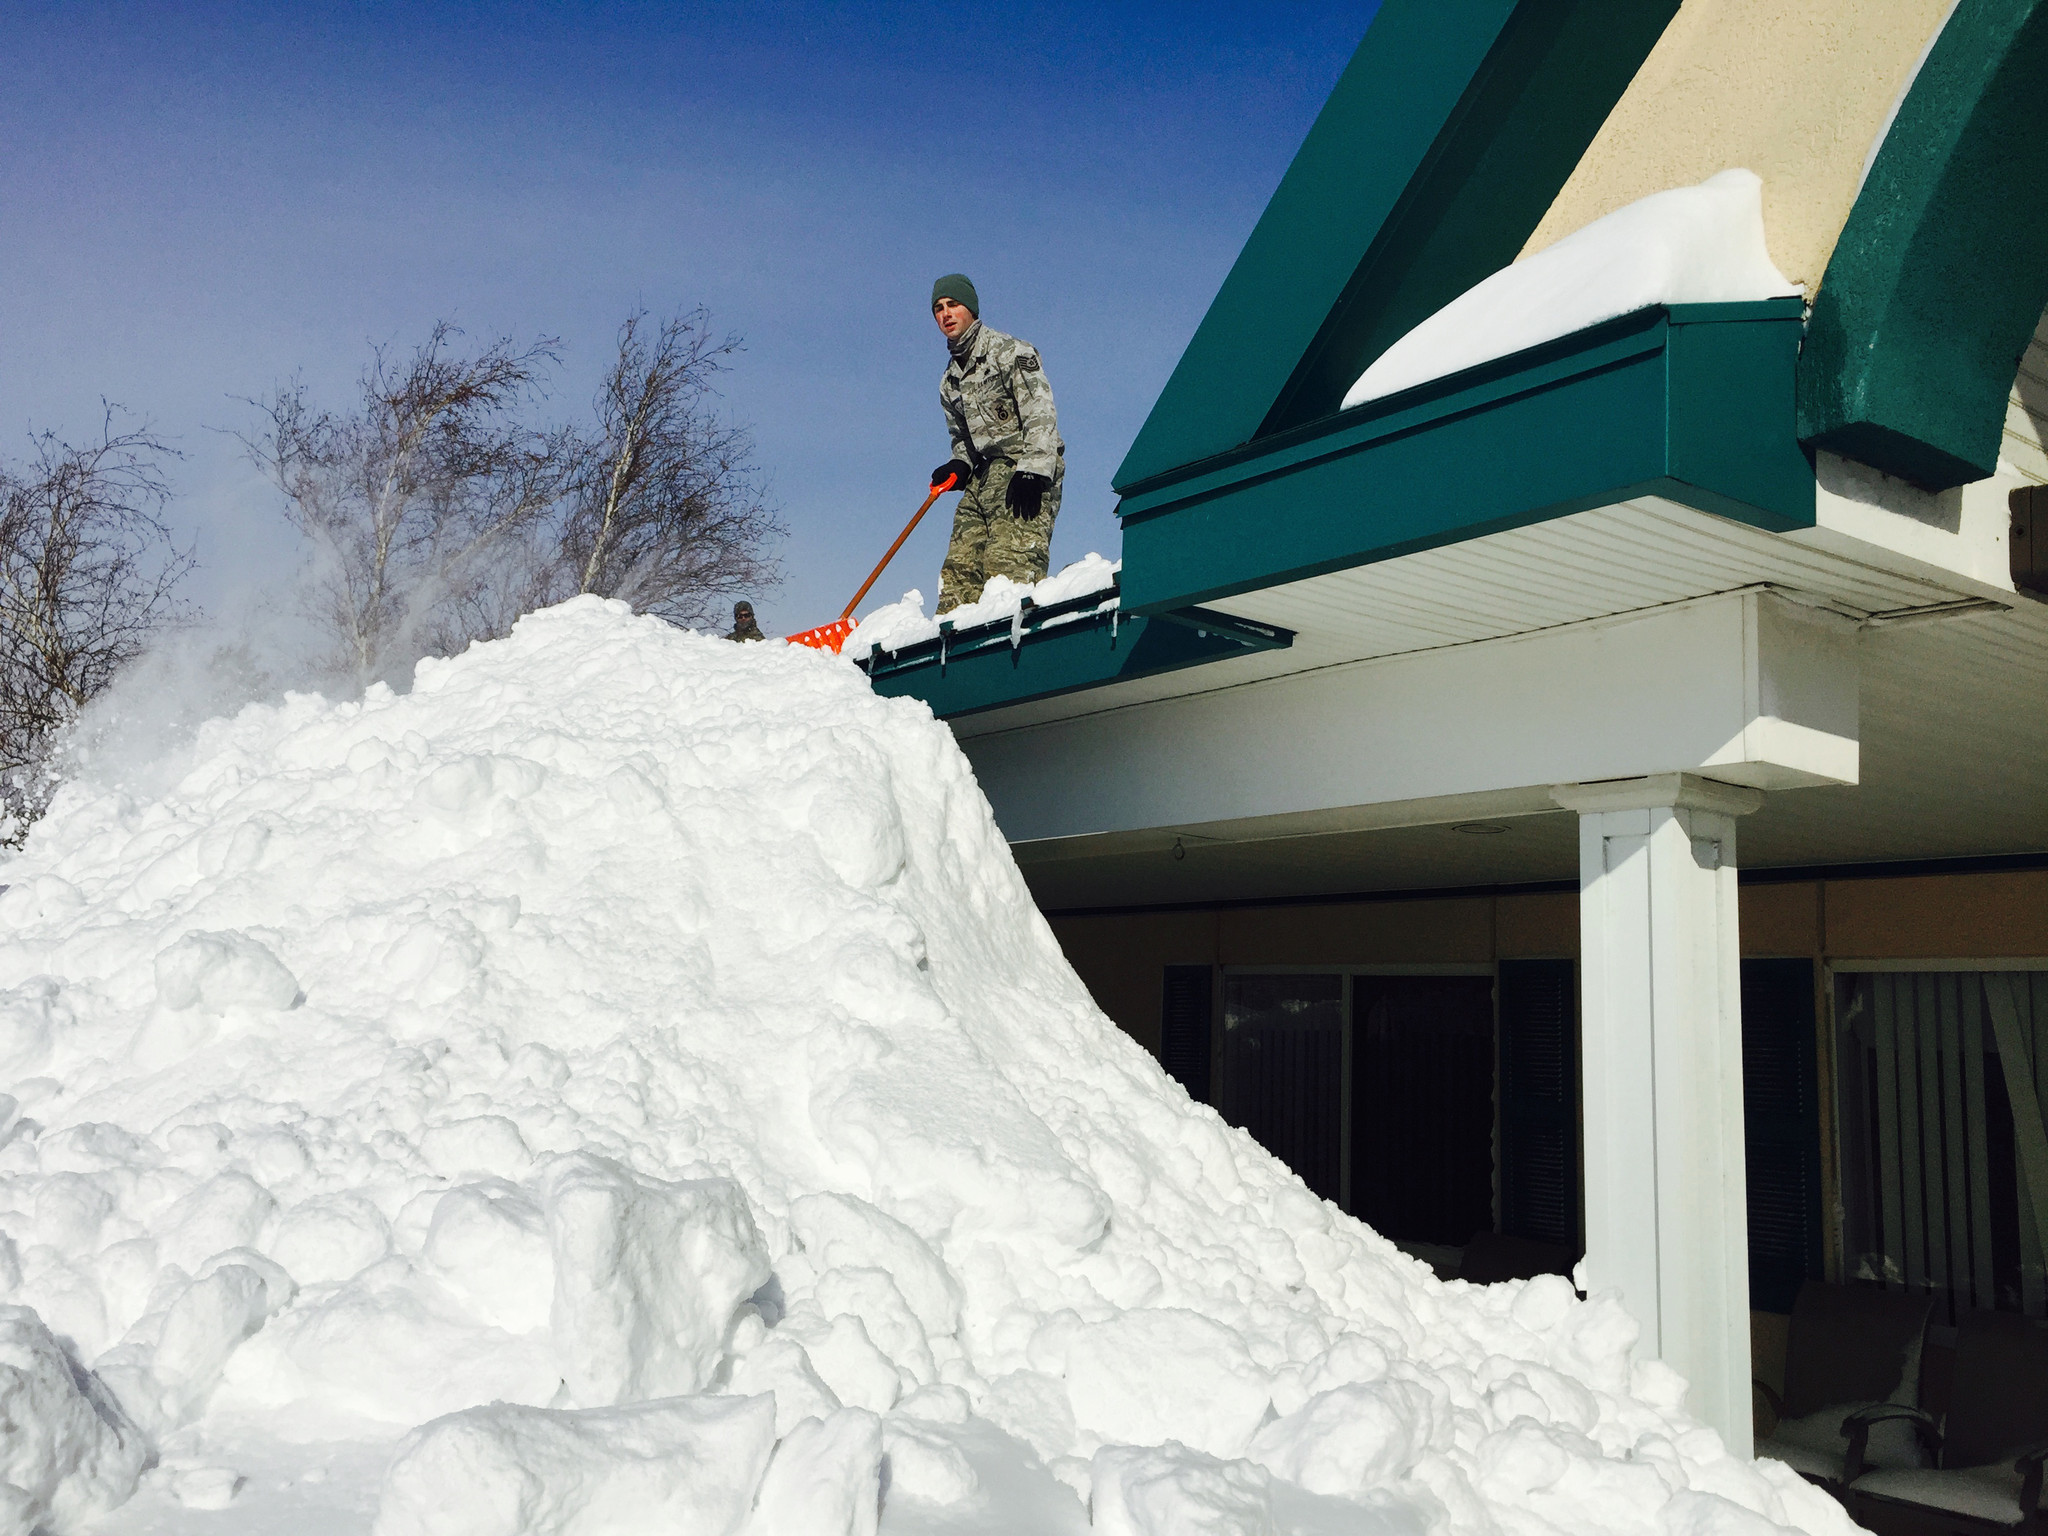 Massive Snowfall Leads To Major Flood Threat In Western